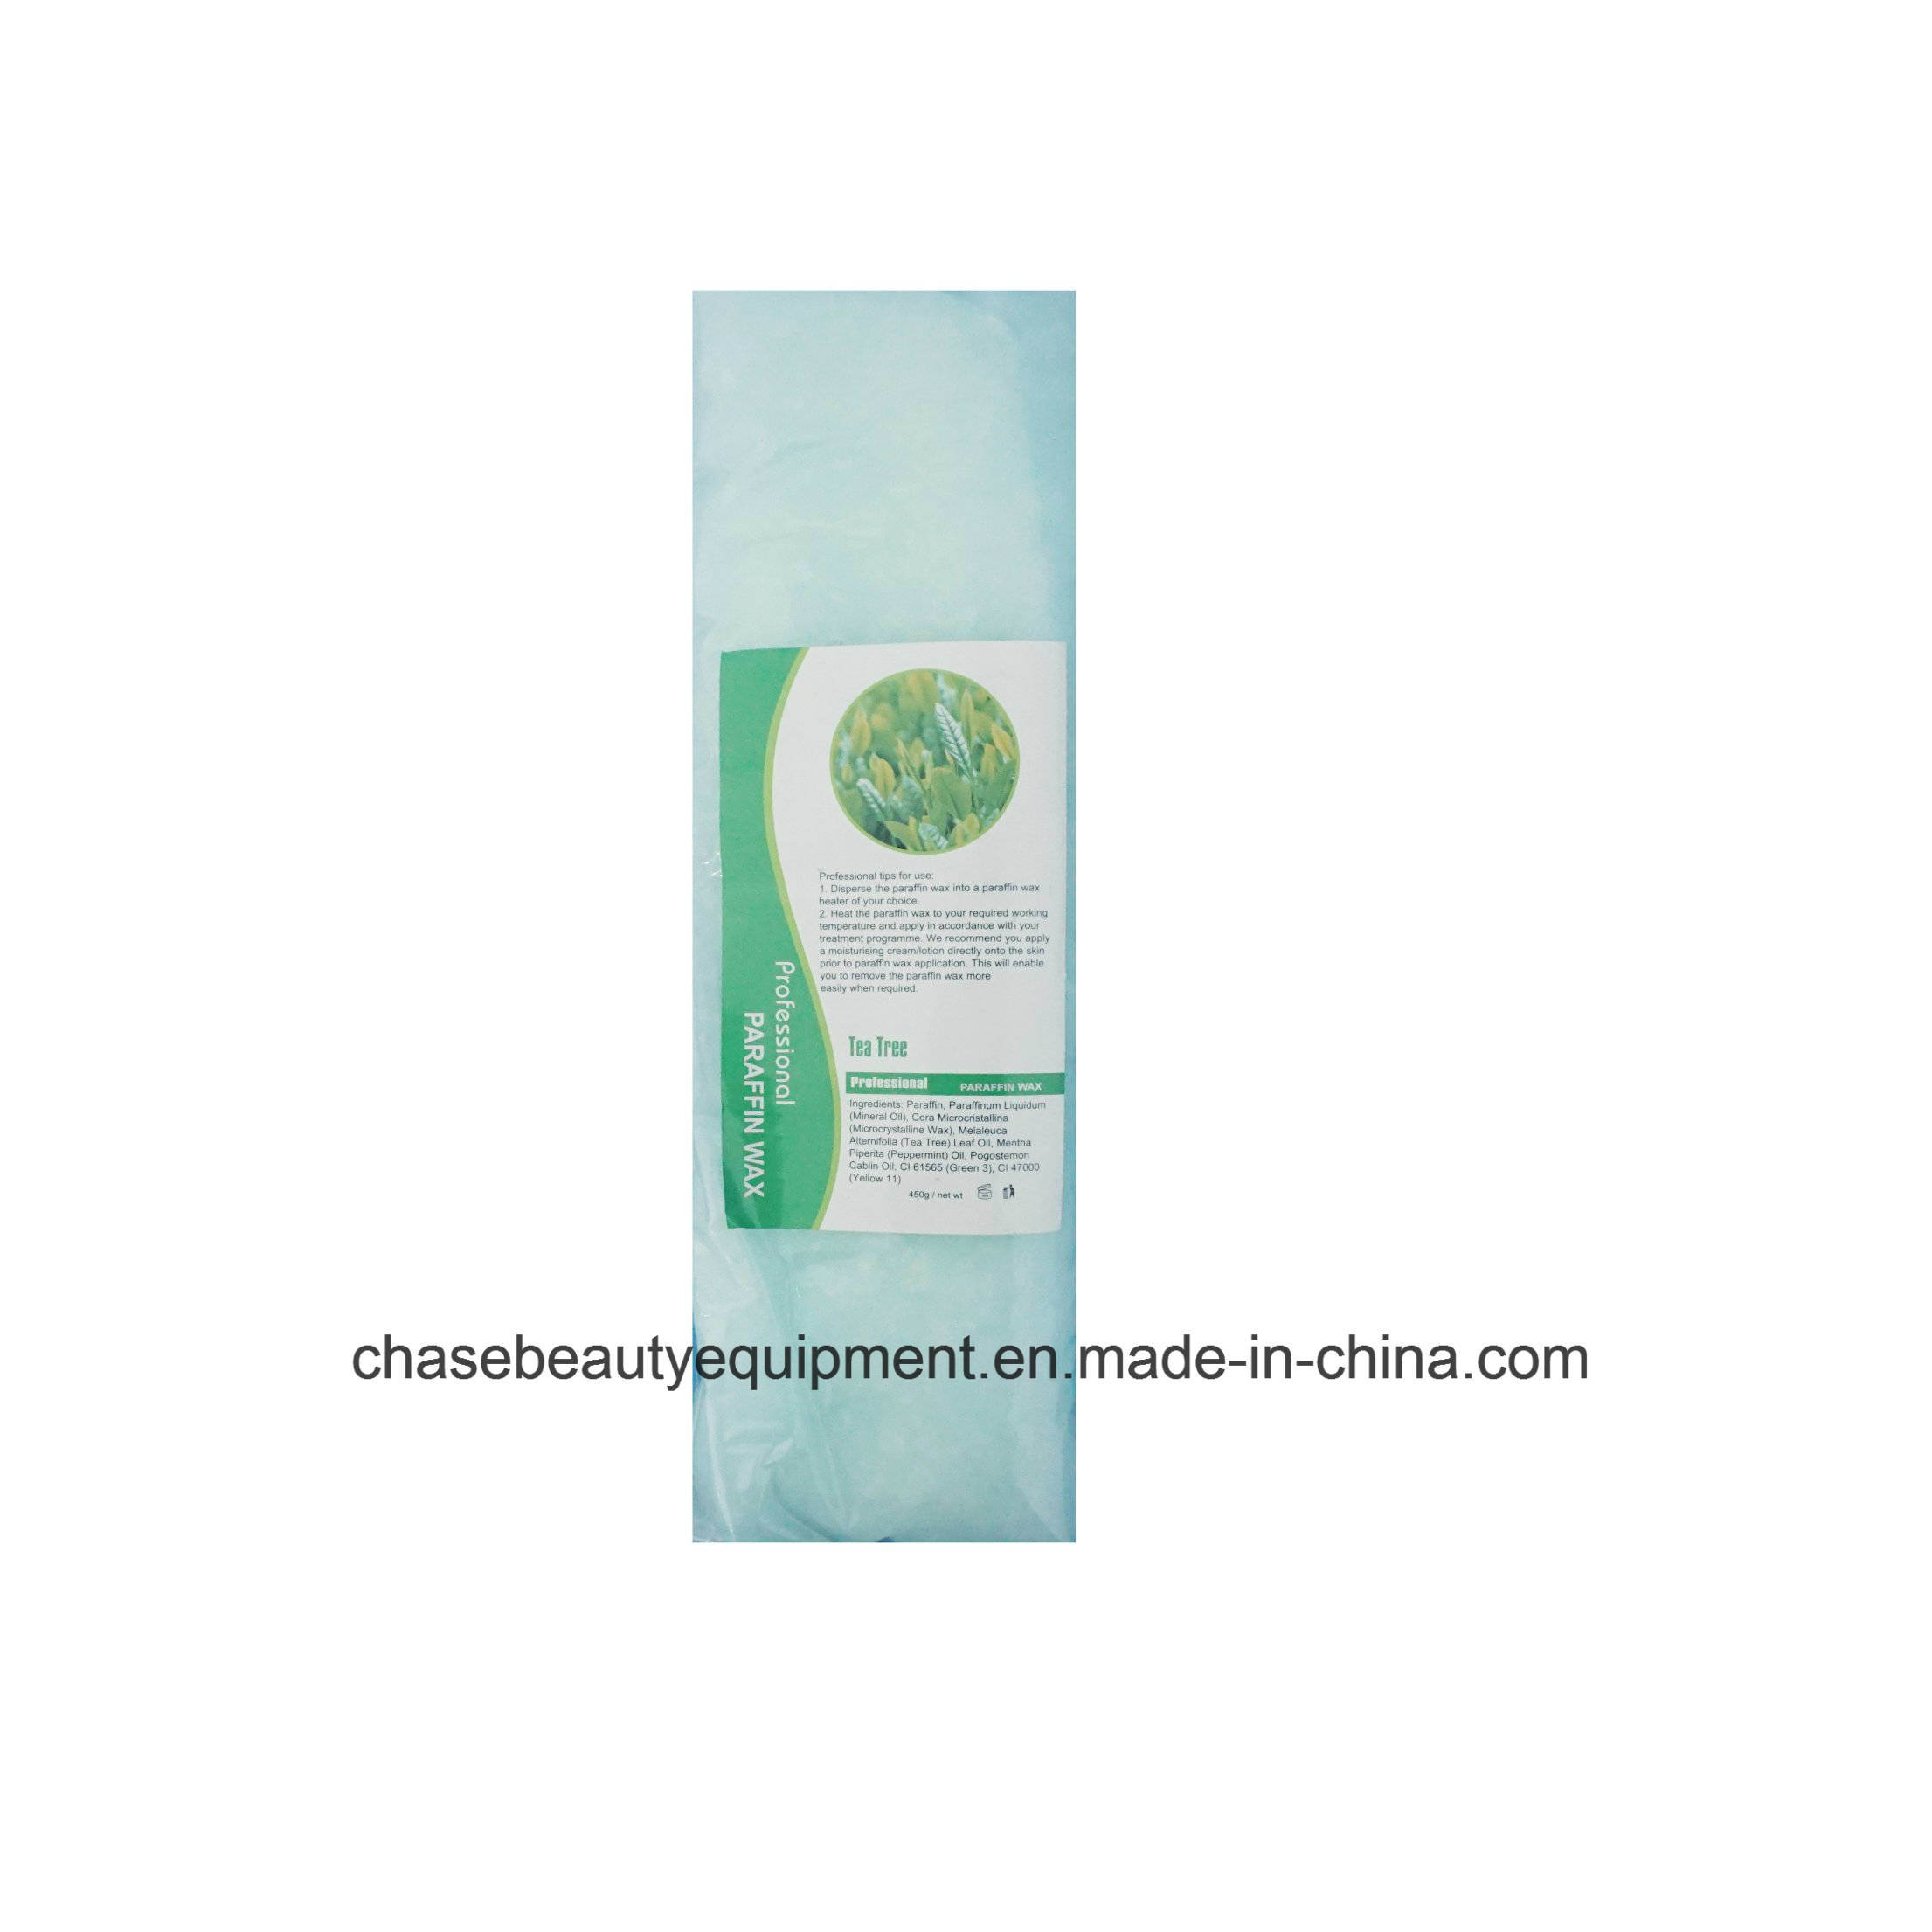 Paraffin Wax for Face, Hand, Feet, Body